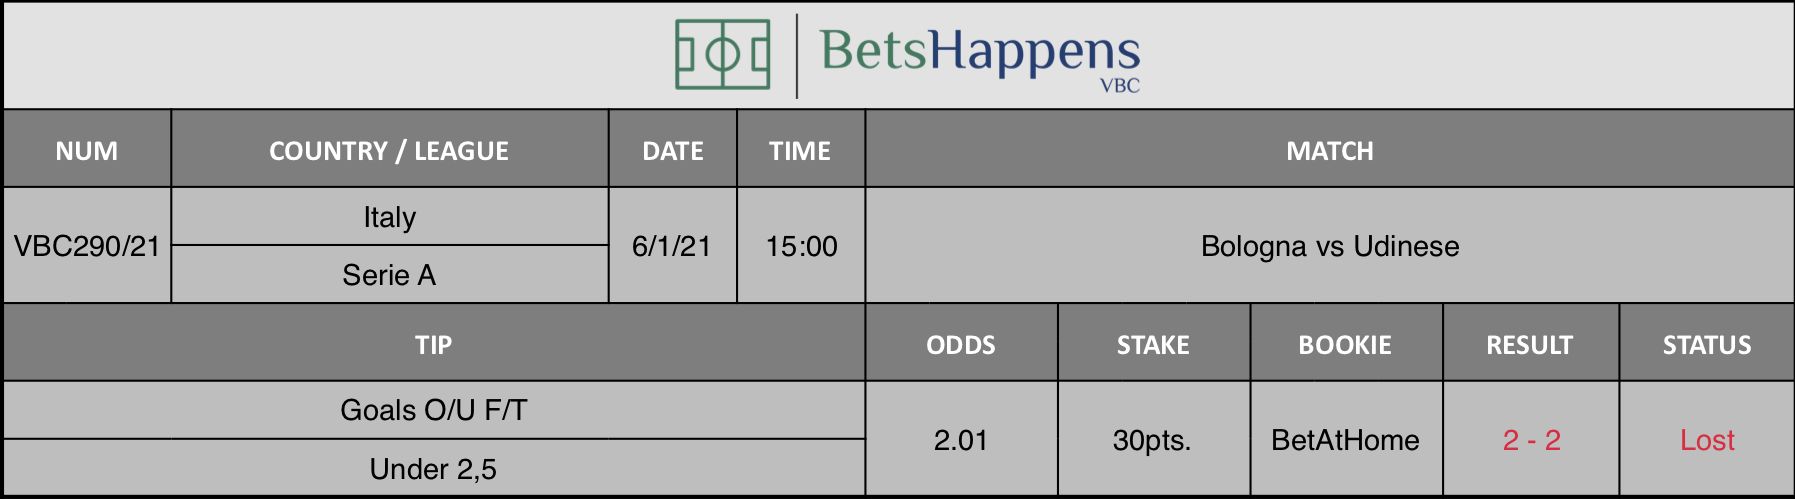 Results of our tip for the Bologna vs Udinese match where Goals O/U F/T Under 2,5 is recommended.